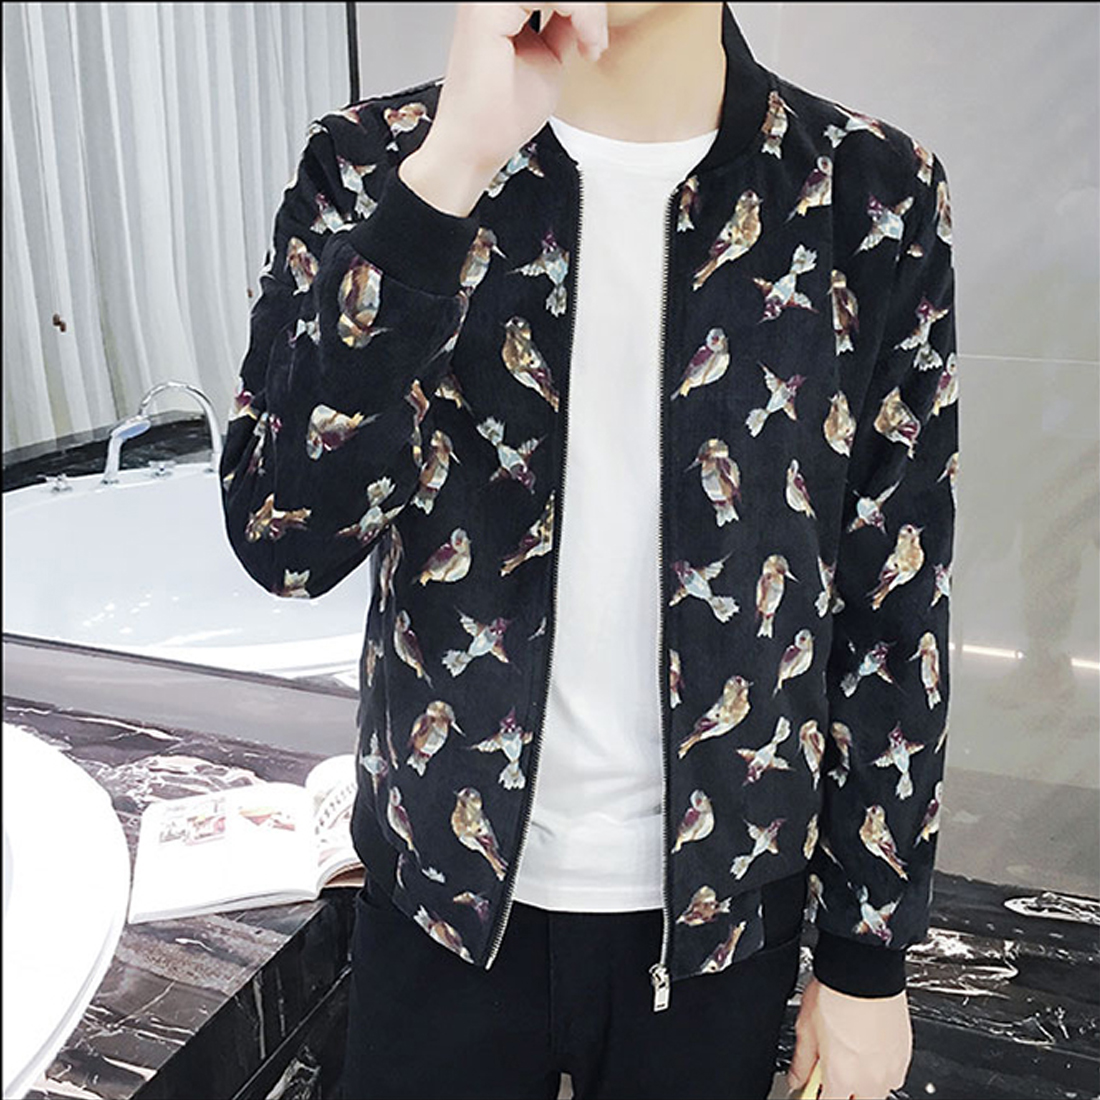 5608b220b US $20.3 27% OFF|Floral Printed Stylish Bomber Jackets Mens Long Sleeve  Zipper Up Brand Clothing 2017 Fashion Slim Casual Basic Coats Red Blue-in  ...